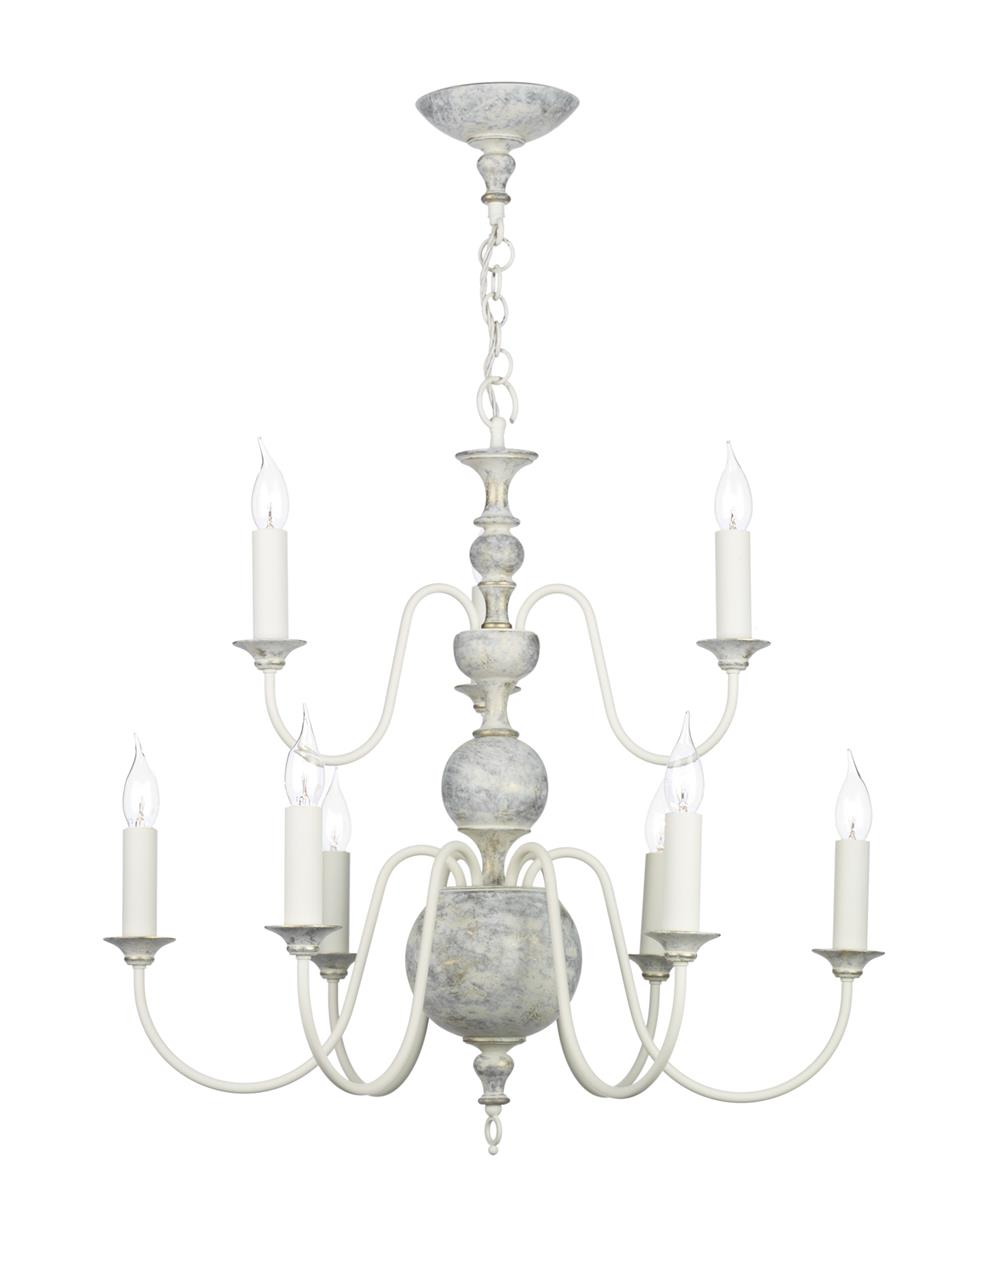 David Hunt Lighting FLE1312 Flemish 9 Light Pendant in distressed powder grey/cream &  gold (Fitting Only)